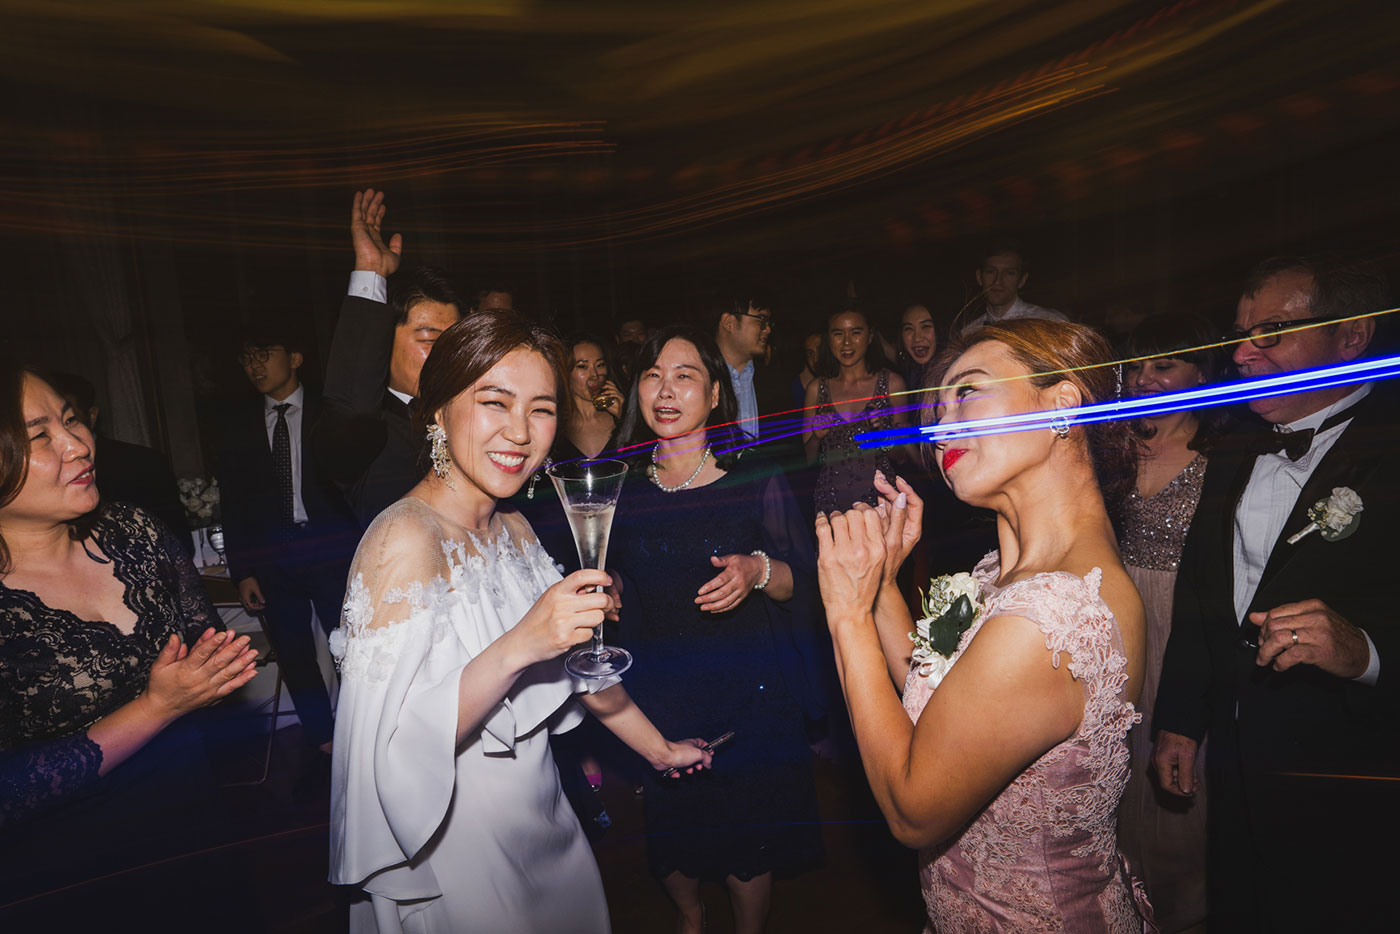 reception dance party at the James Burden Kahn Mansion by Weddings by Hanel